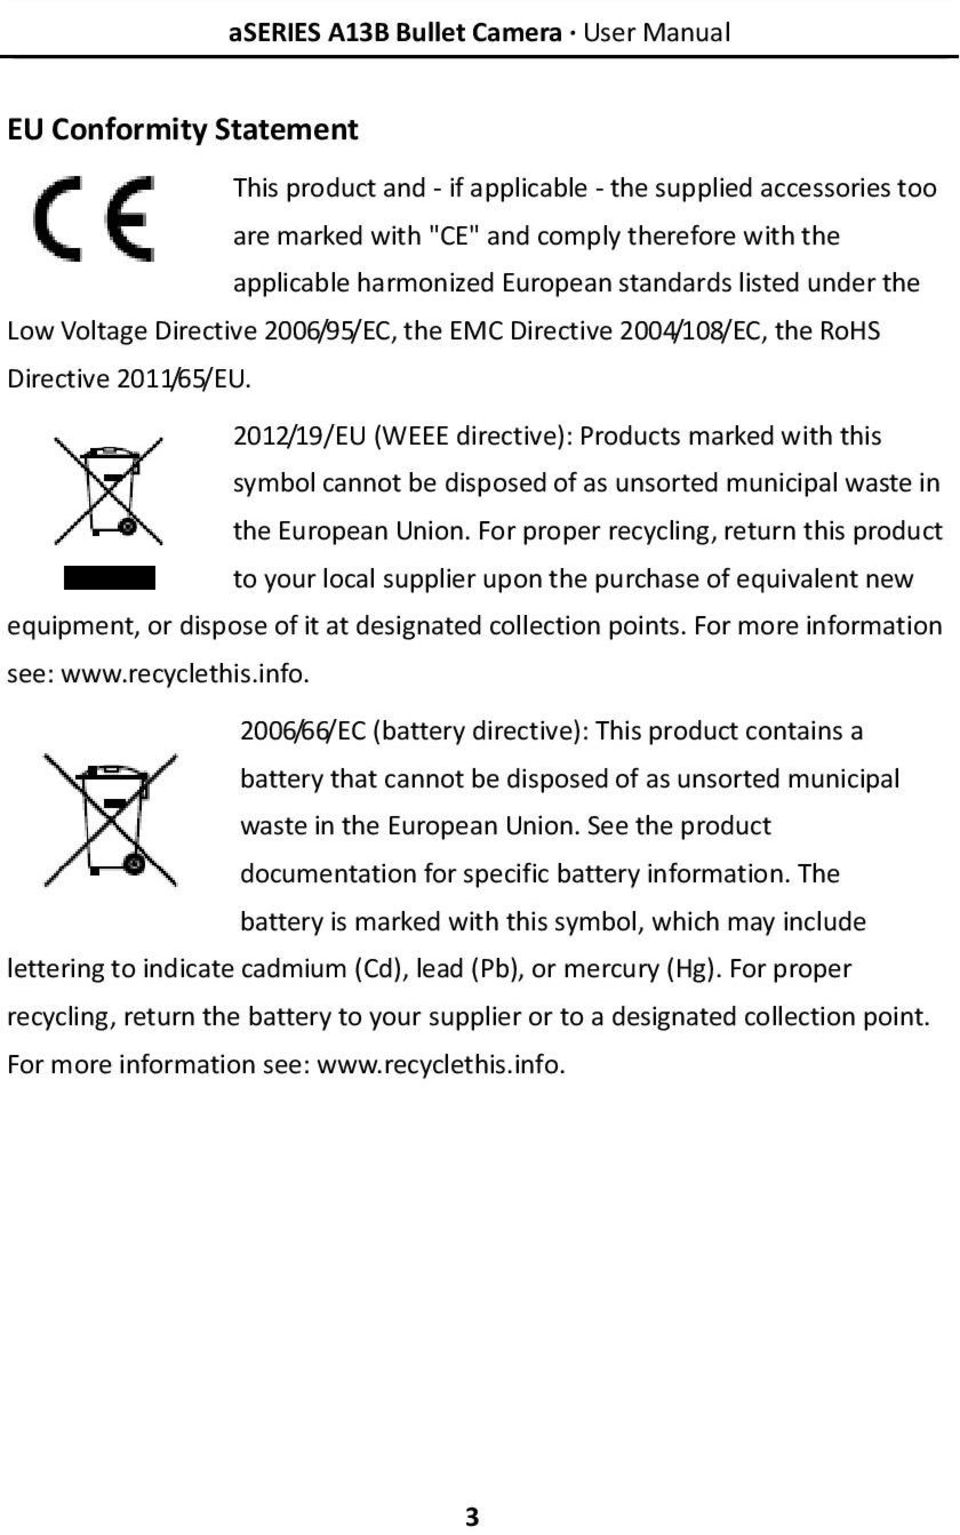 2012/19/EU (WEEE directive): Products marked with this symbol cannot be disposed of as unsorted municipal waste in the European Union.